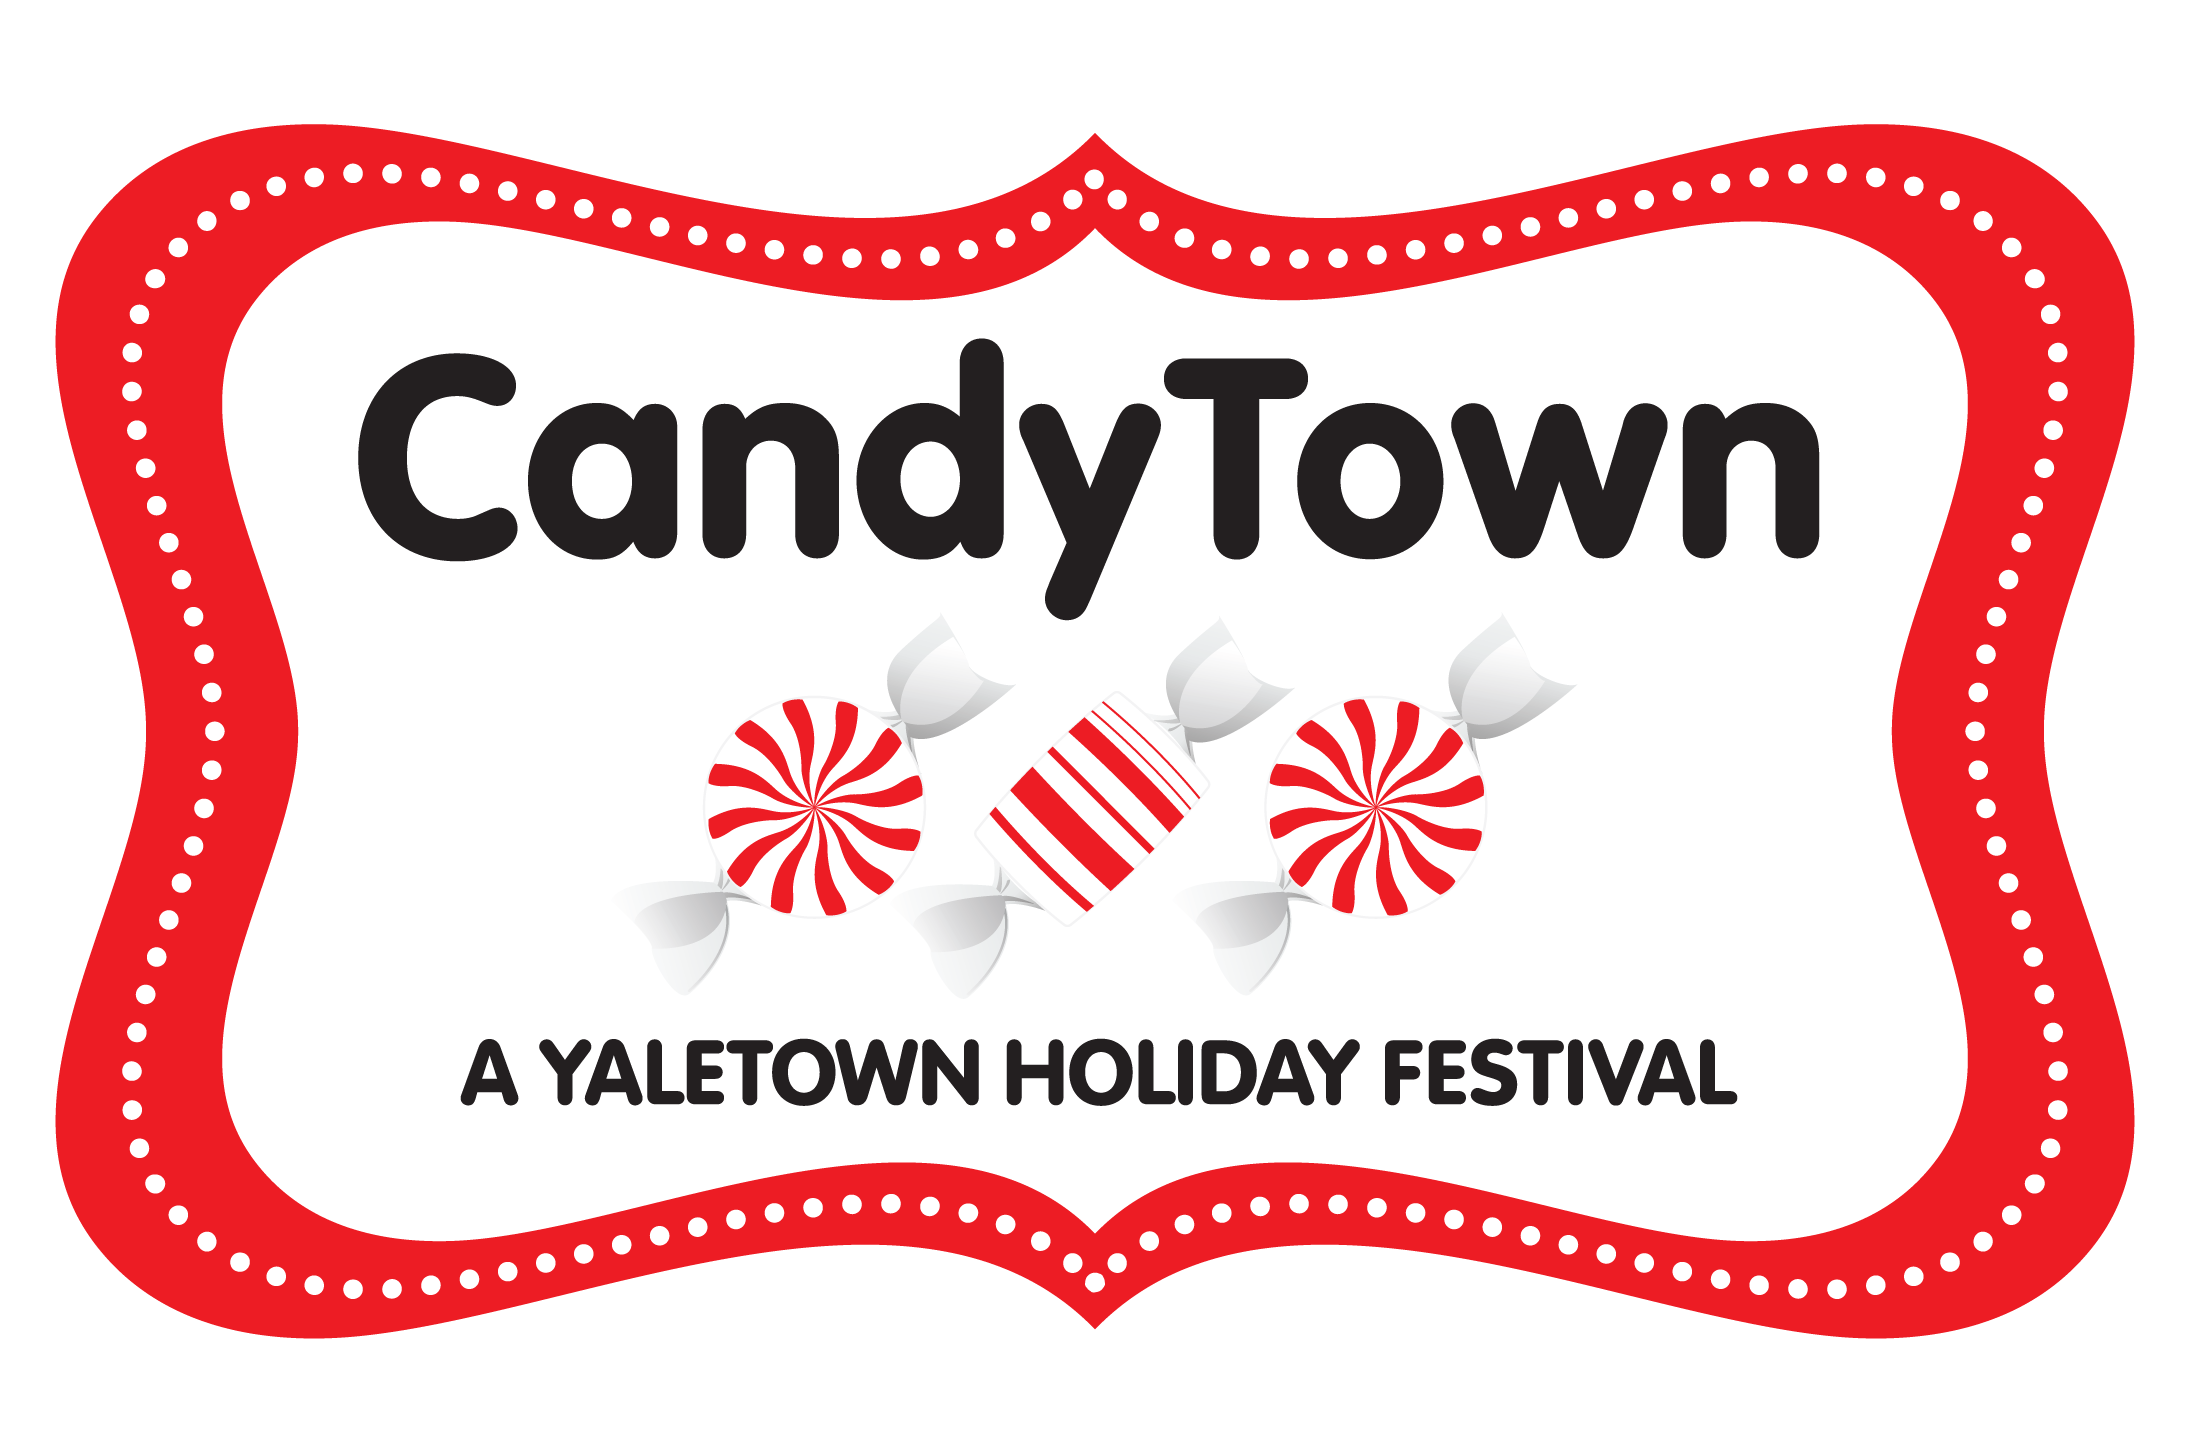 candytown_id_print